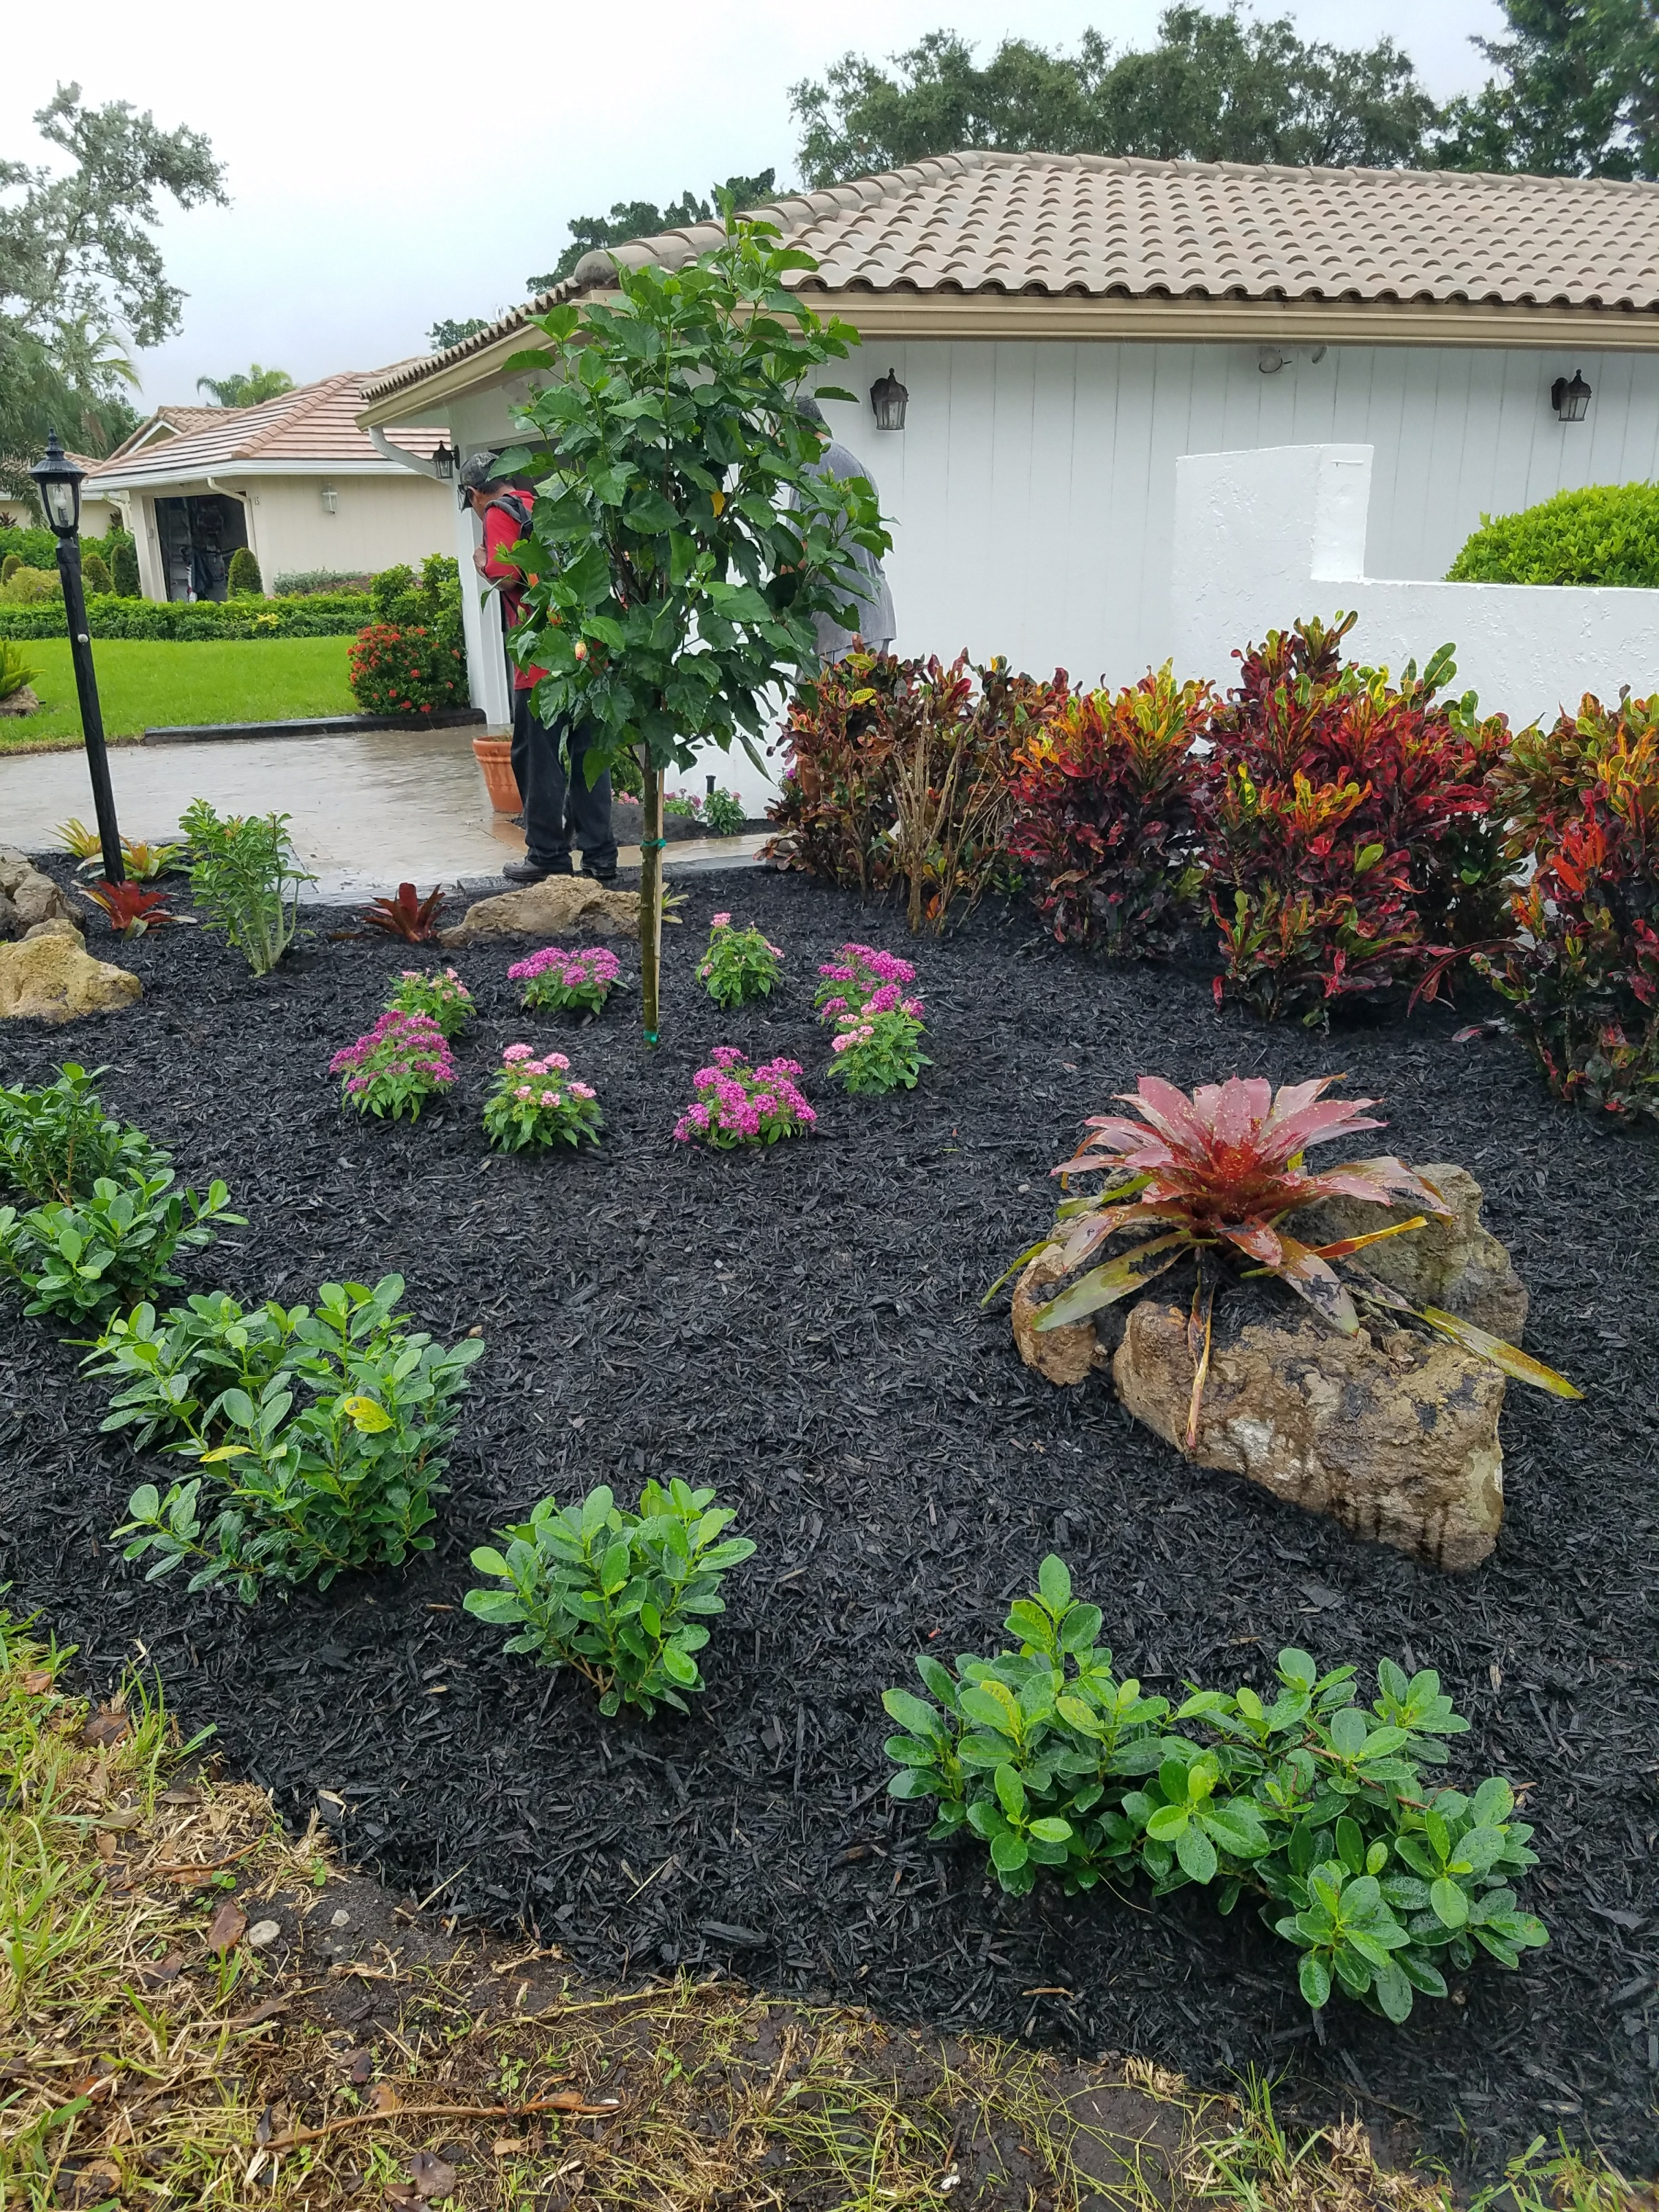 M&J Royal Landscaping image